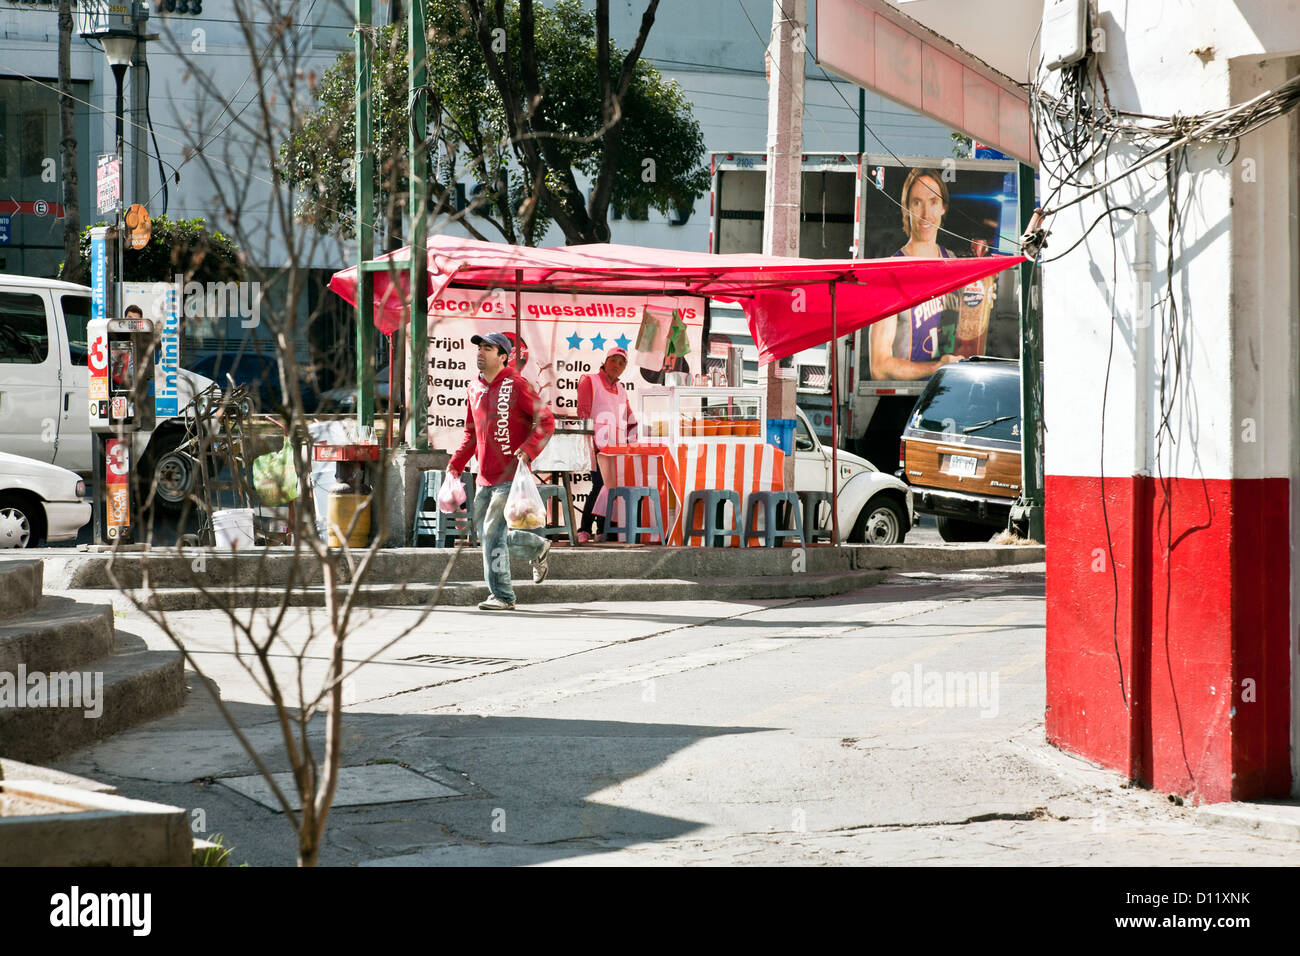 street corner scene with colorful taco & quesadilla stand on beautiful sunny day in outlying commercial district - Stock Image